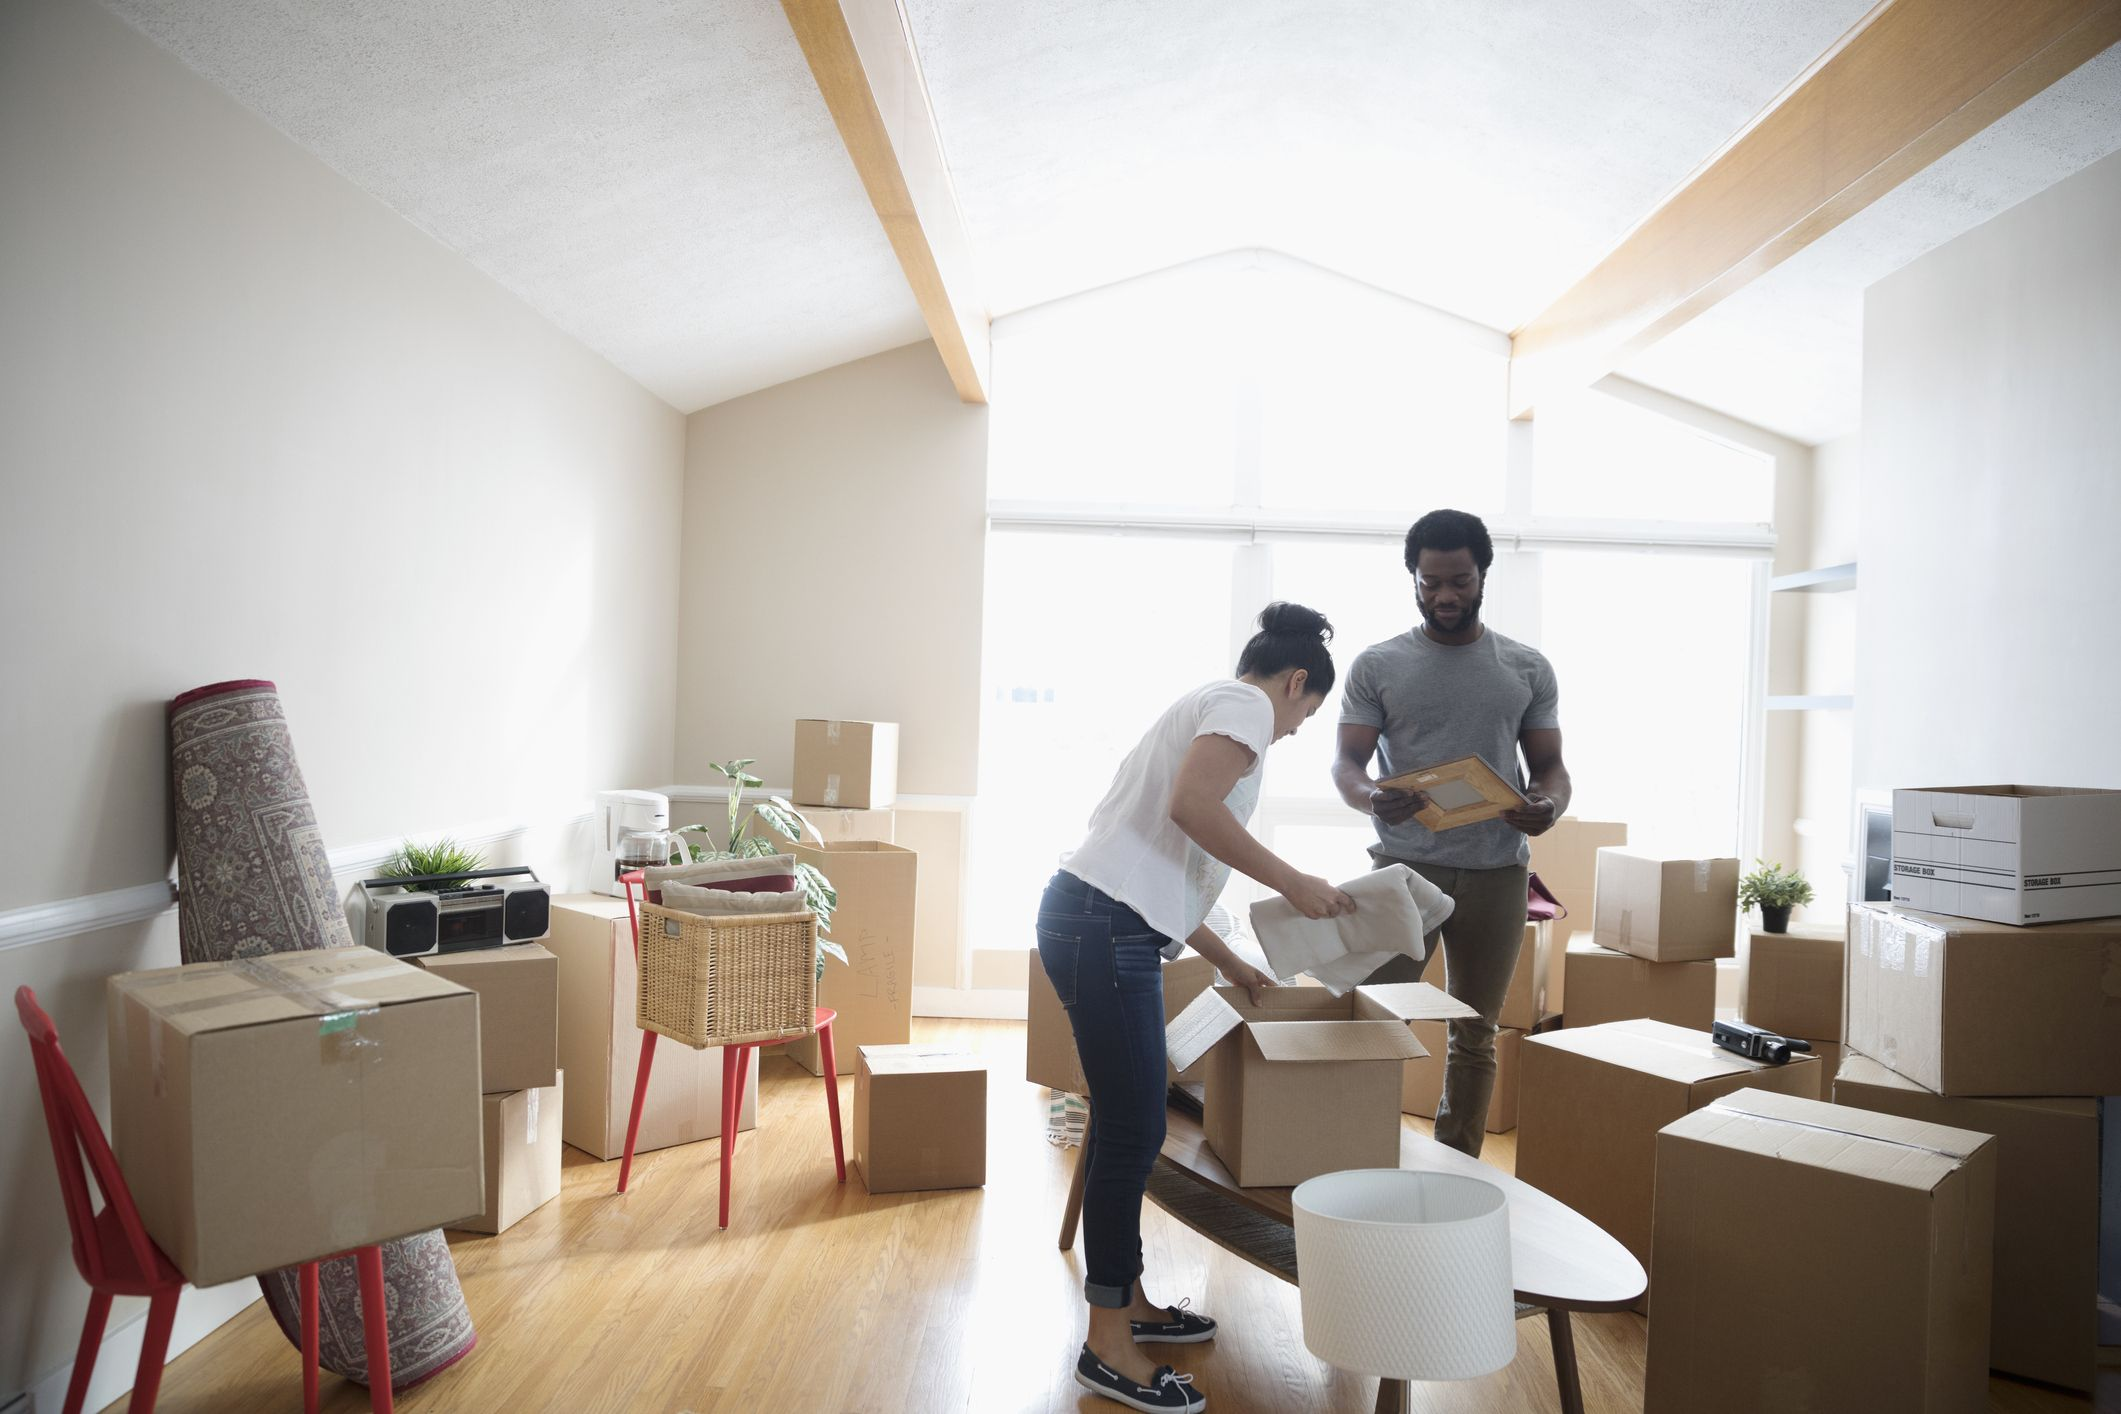 Should You Live Together Before Marriage? Real Talk From Experts